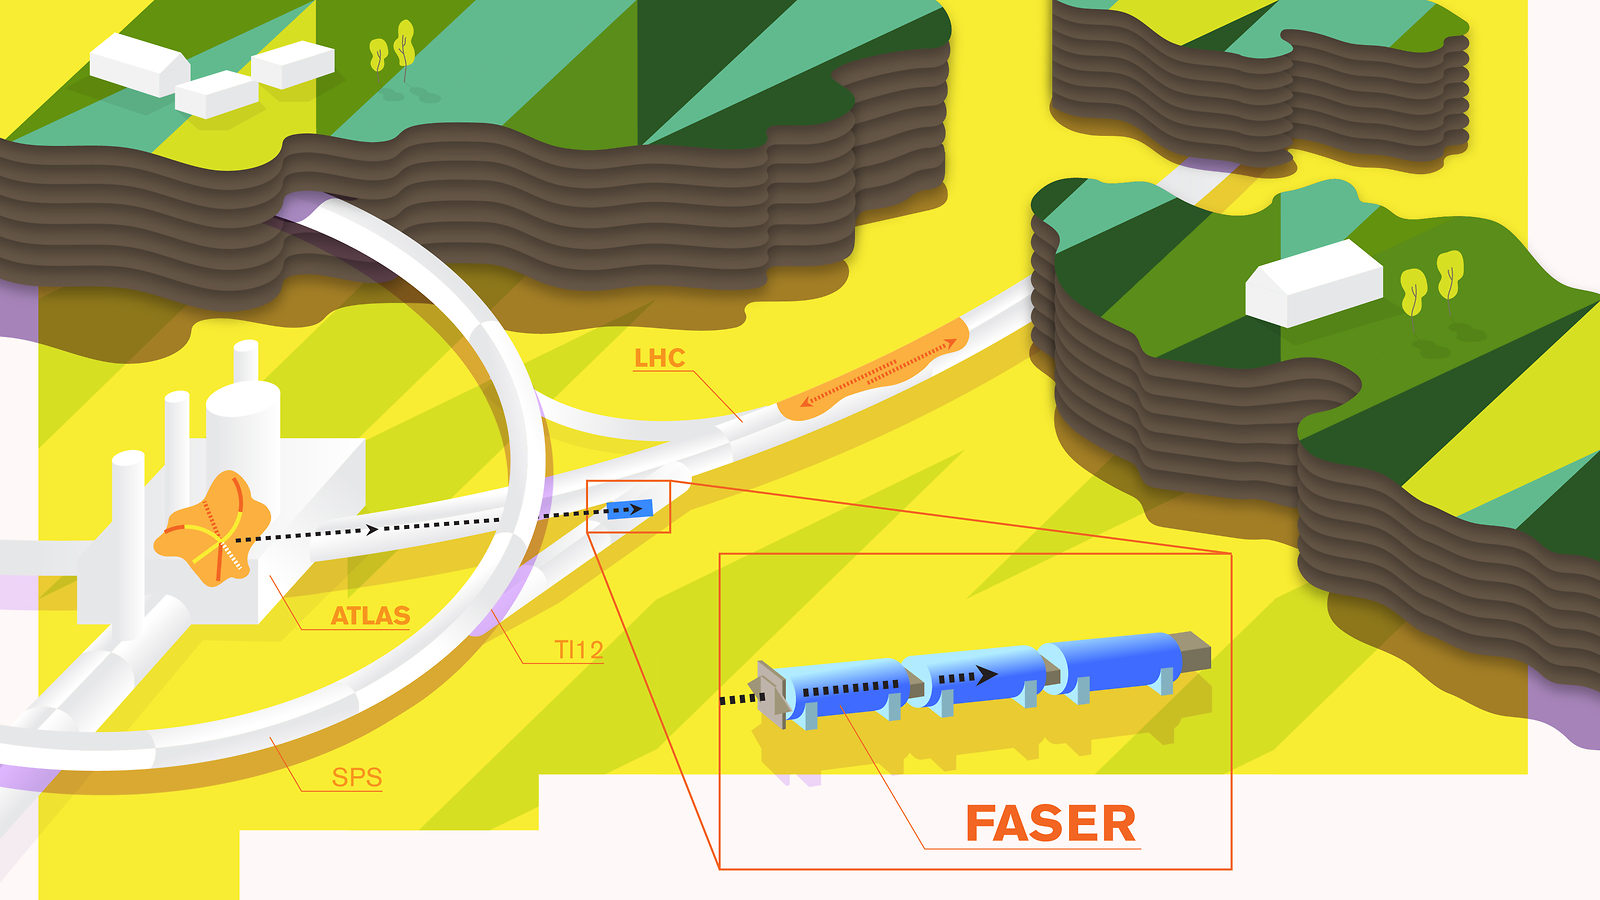 An illustration of the FASER experiment